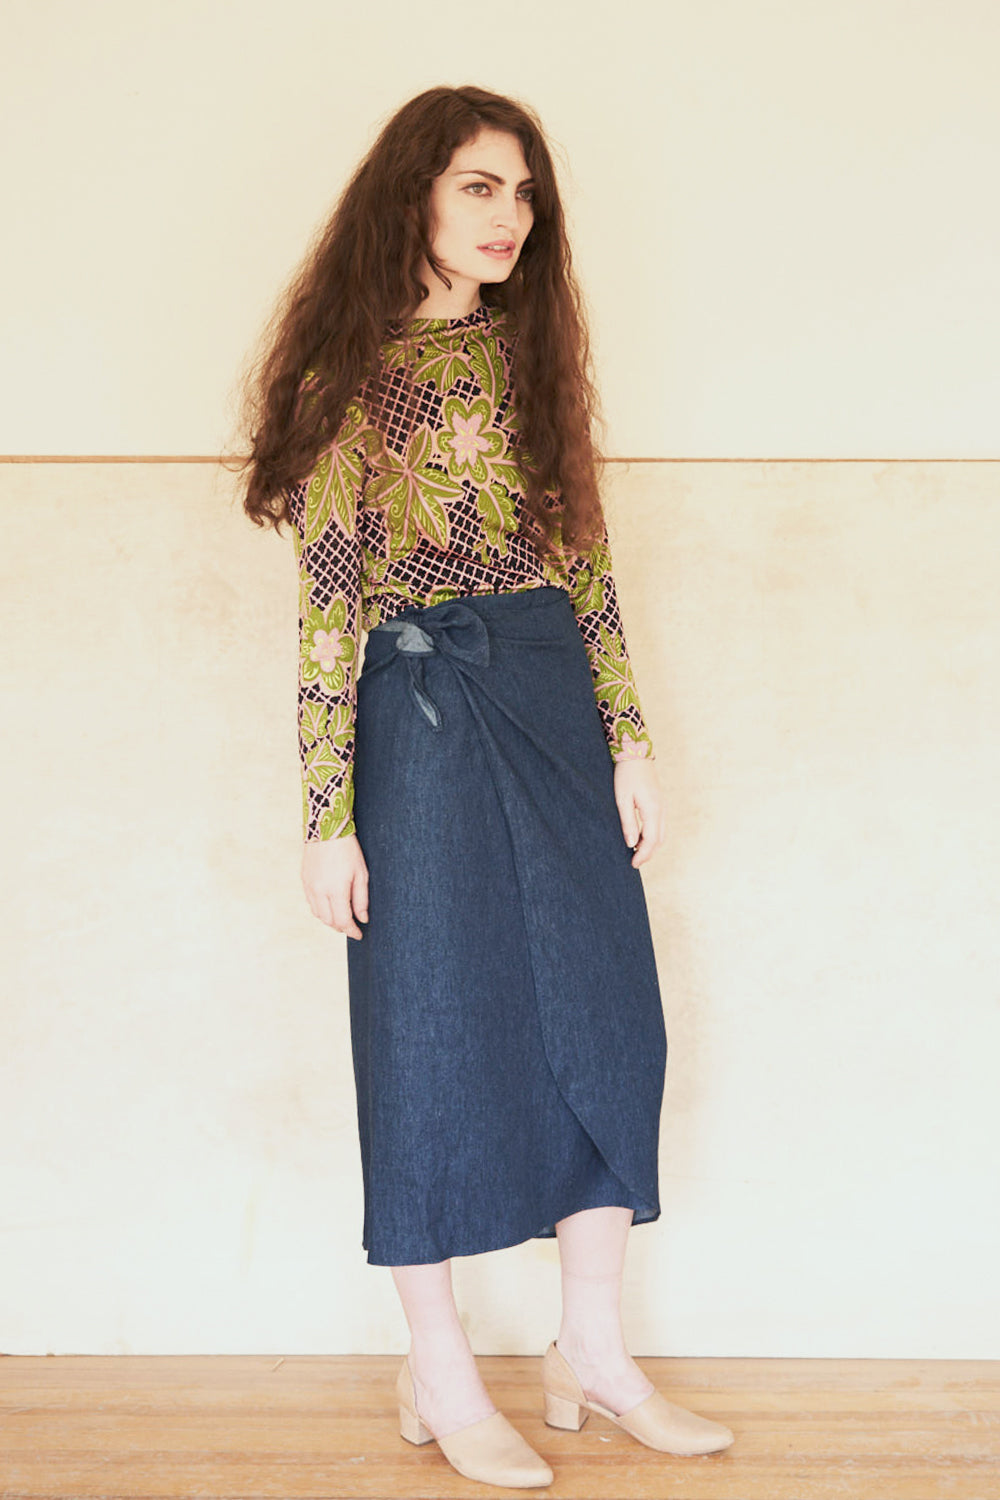 Elise Ballegeer Sustainable Hemp and Organic Cotton Denim Wrap Skirt